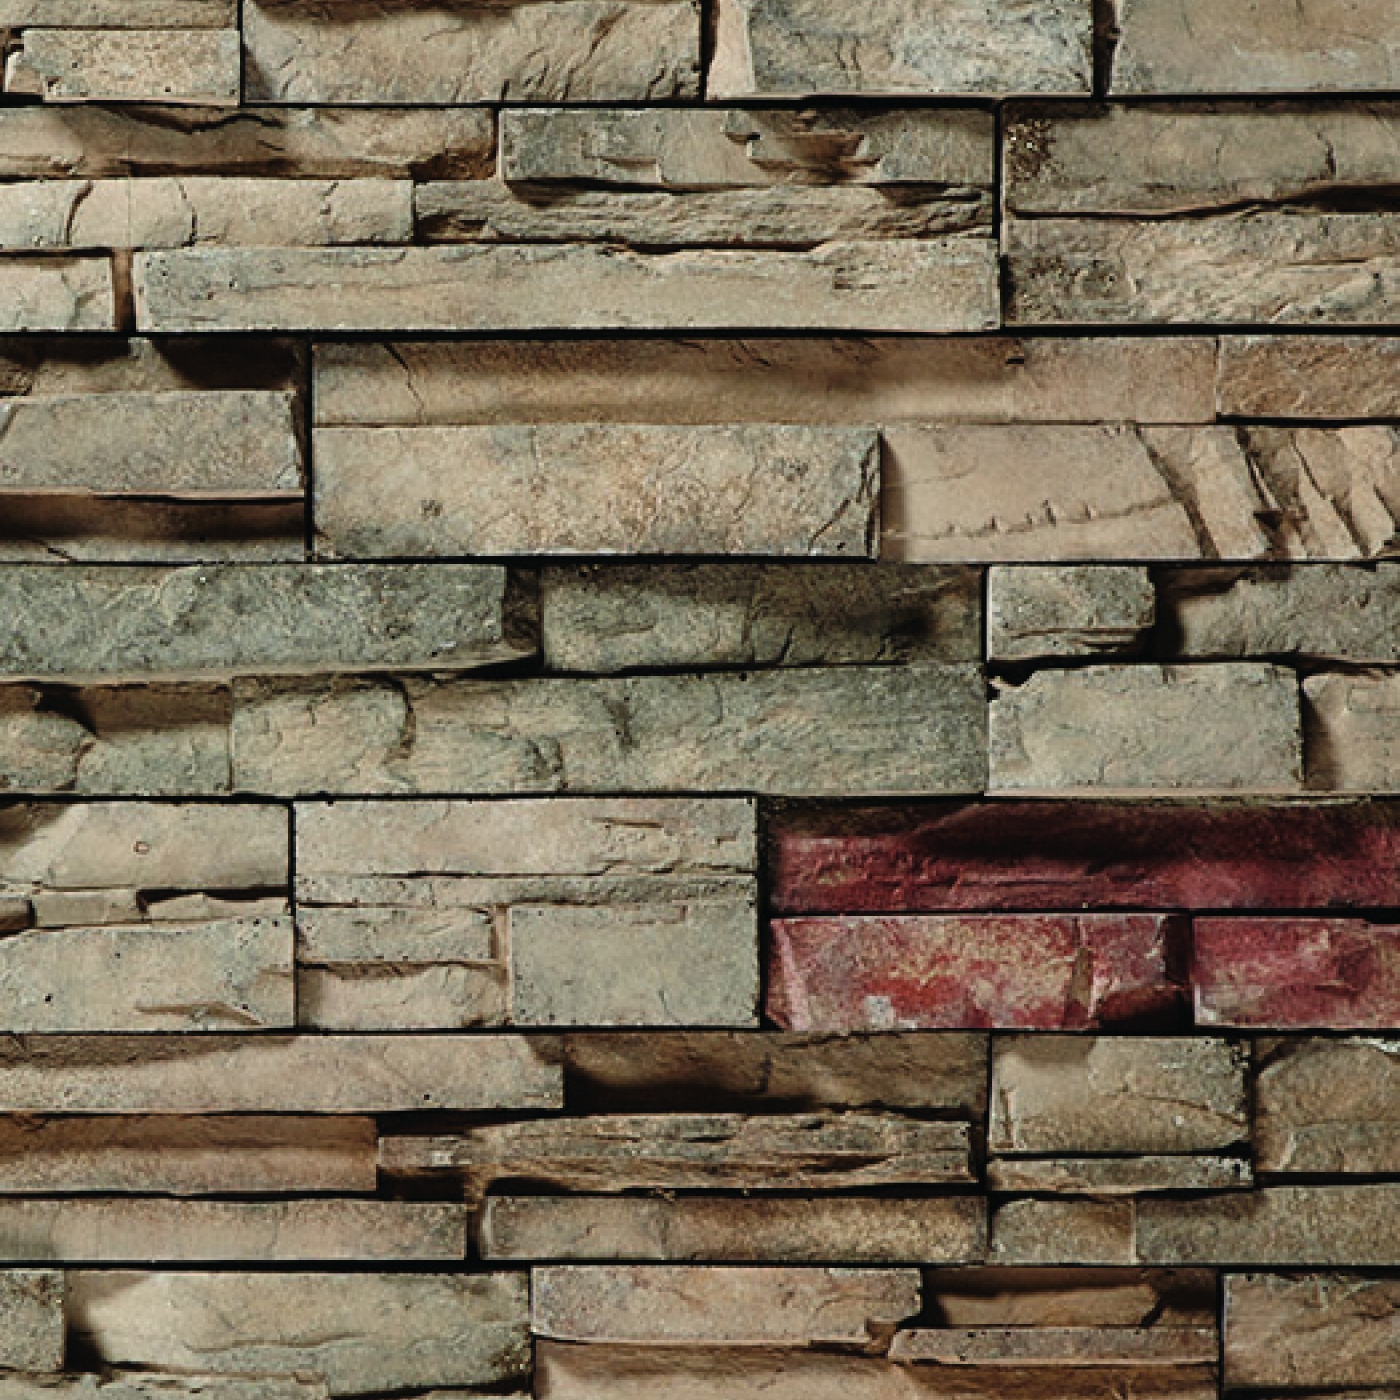 Bucks County Prostack Stone Veneer from Environmental StoneWorks